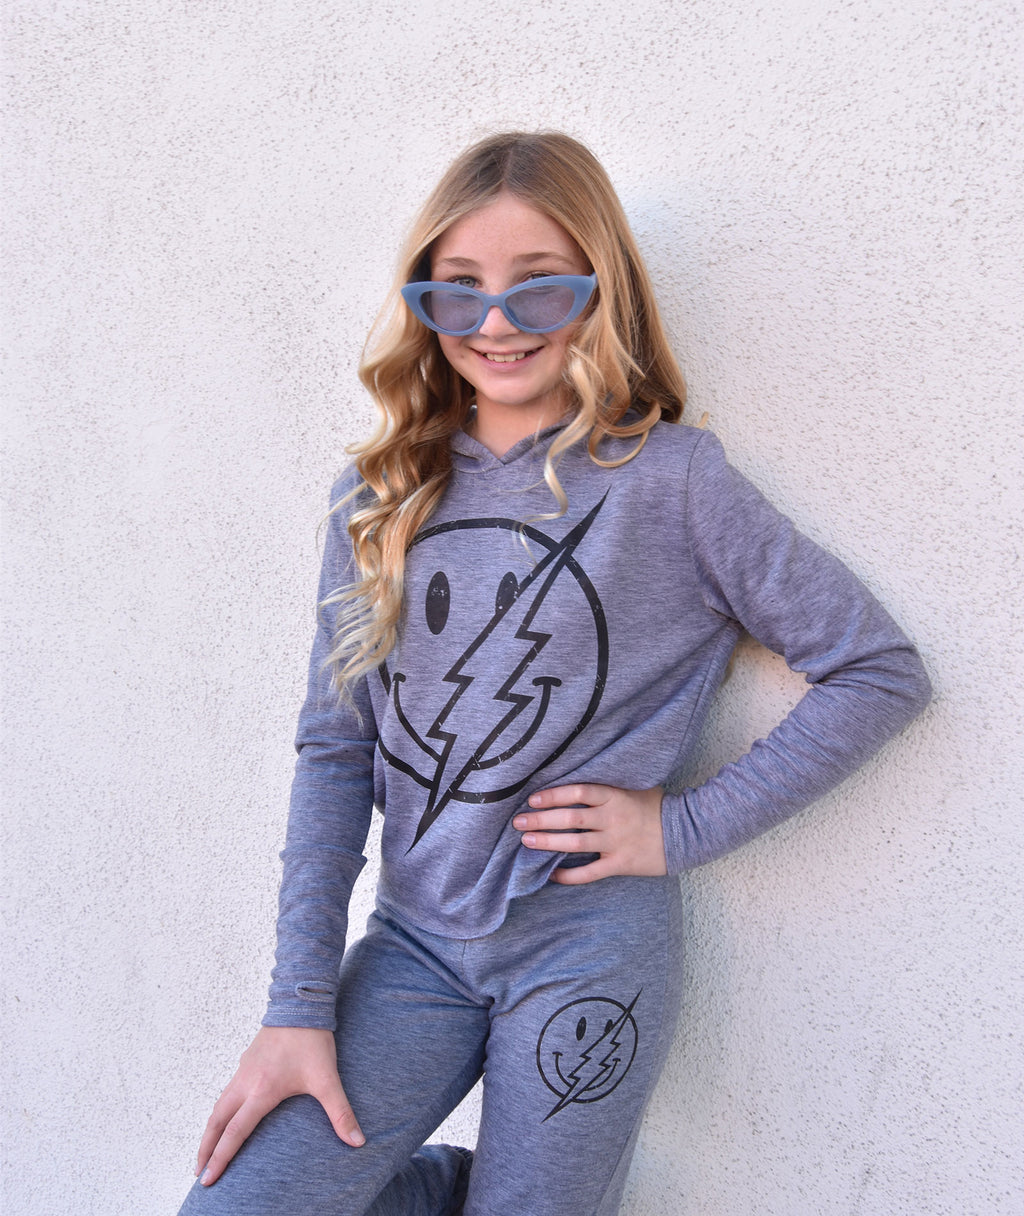 Firehouse Girls Smiley Bolt Sweatpants